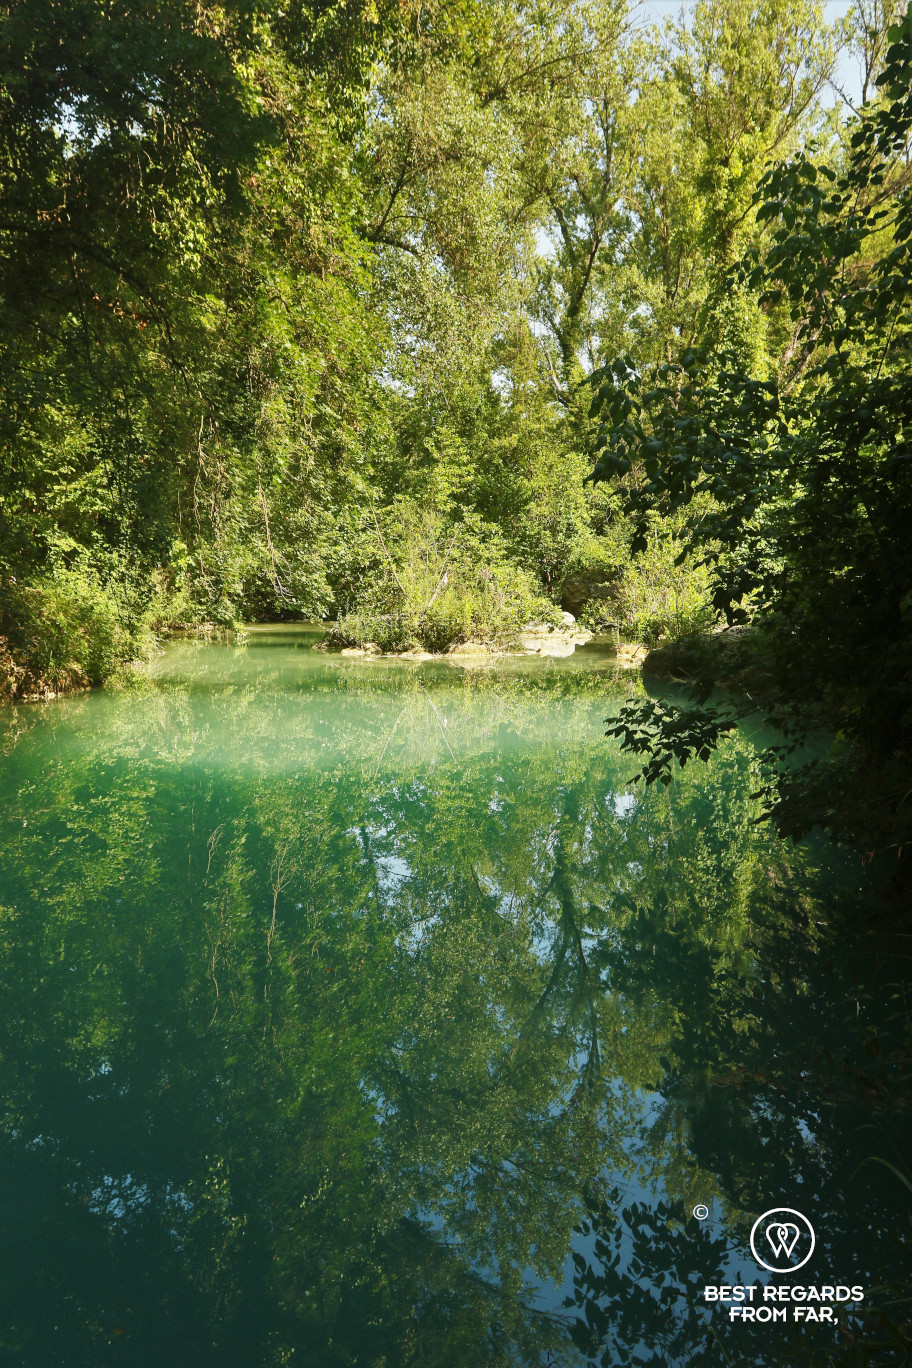 Hiking and swimming the Elsa River, Tuscany, Italy